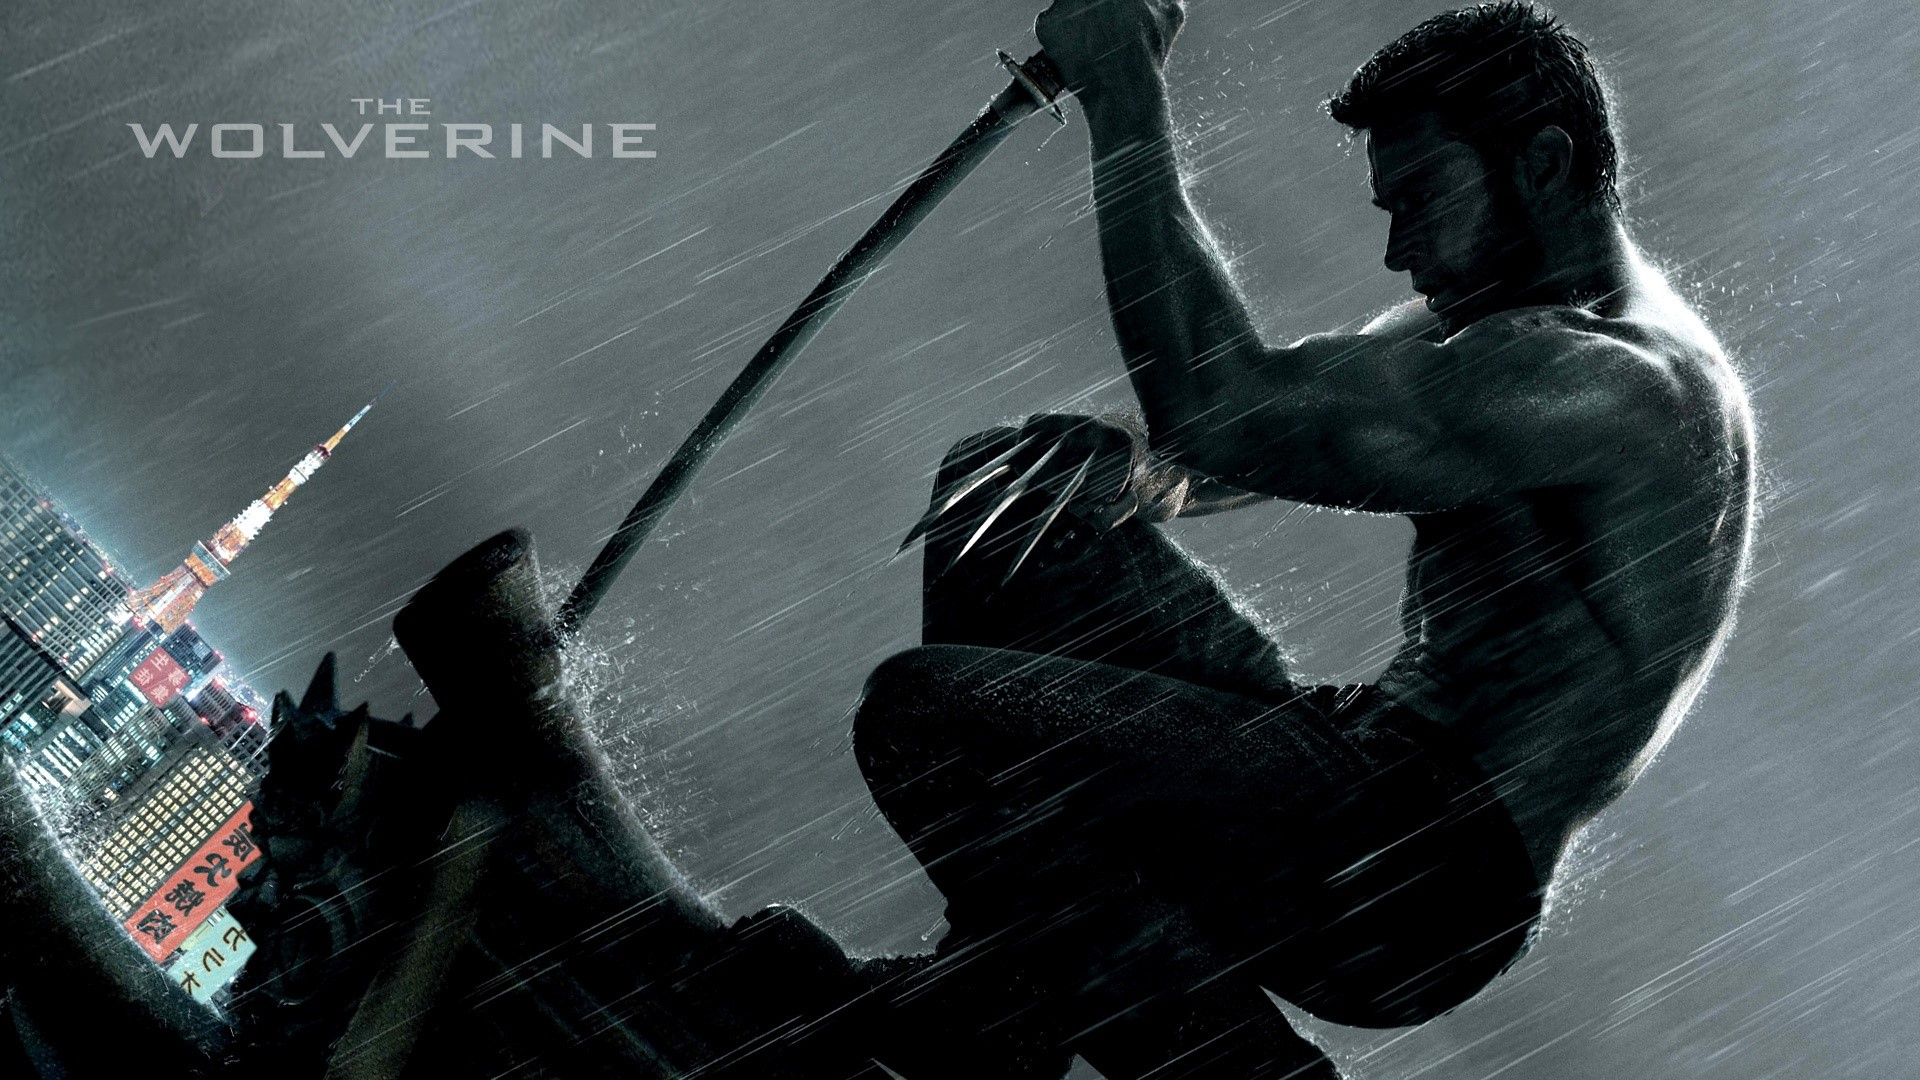 Wallpaper Hugh Jackman en Wolverine Images